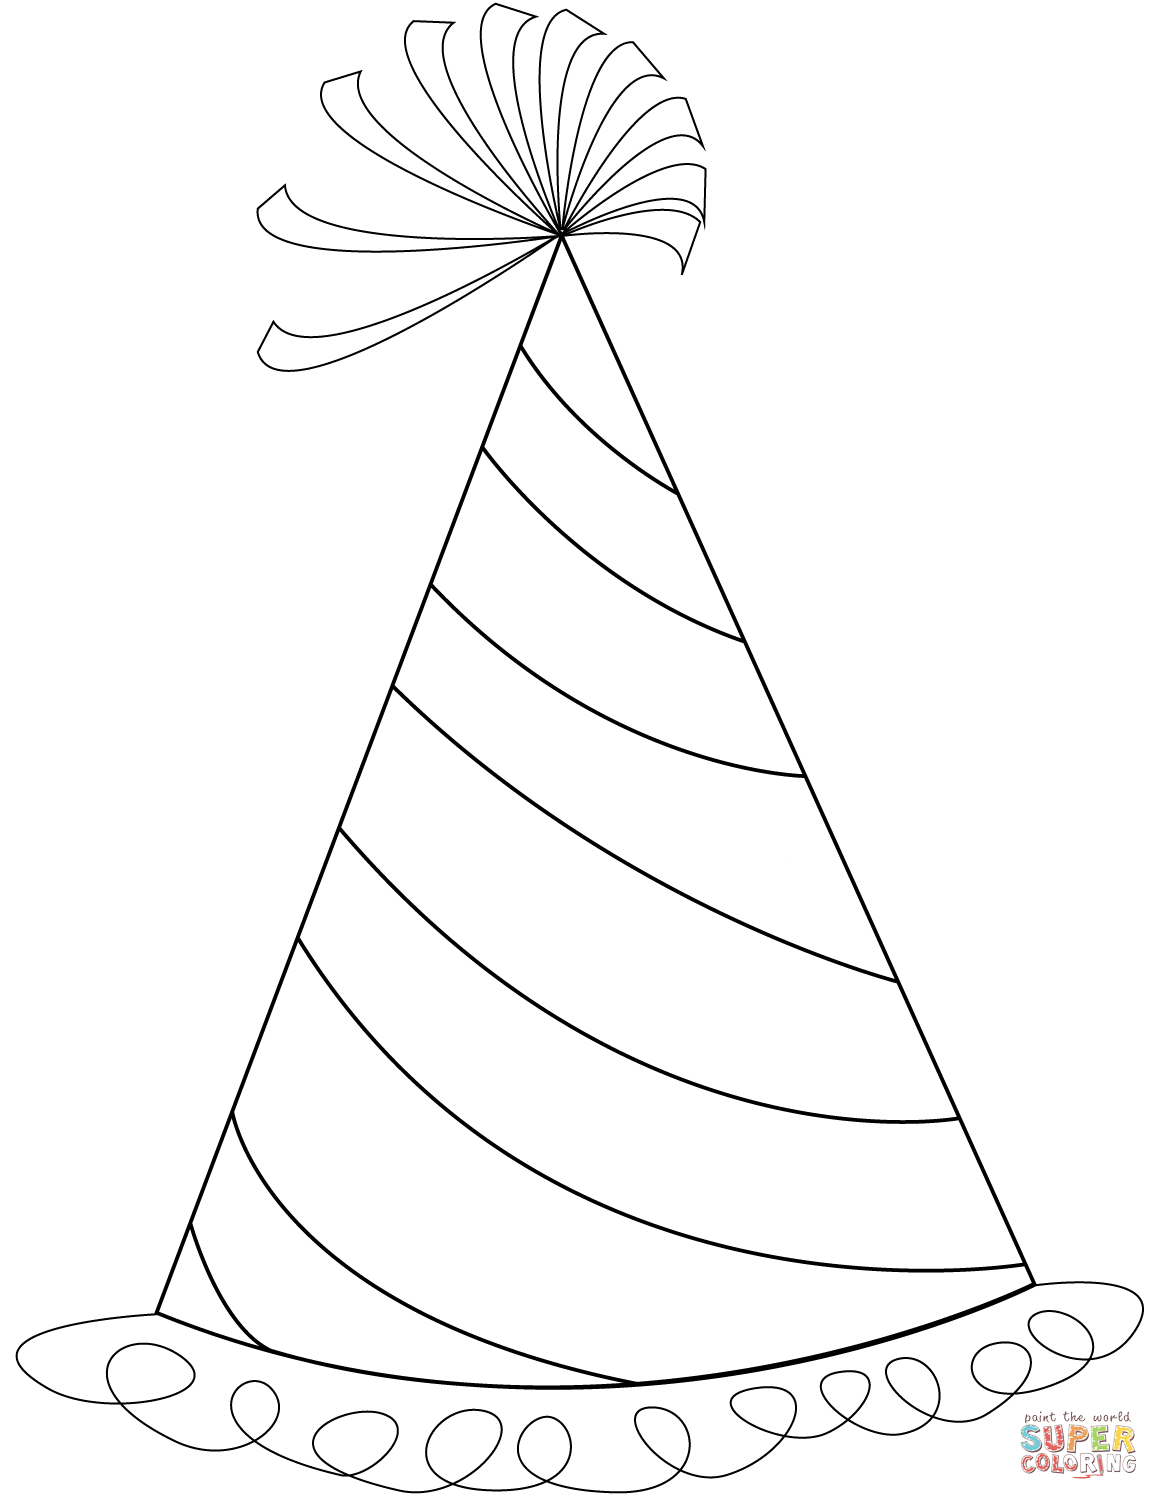 Birthday Hat Coloring Pages Birthday Hat Coloring Pages Birthday Party Hats